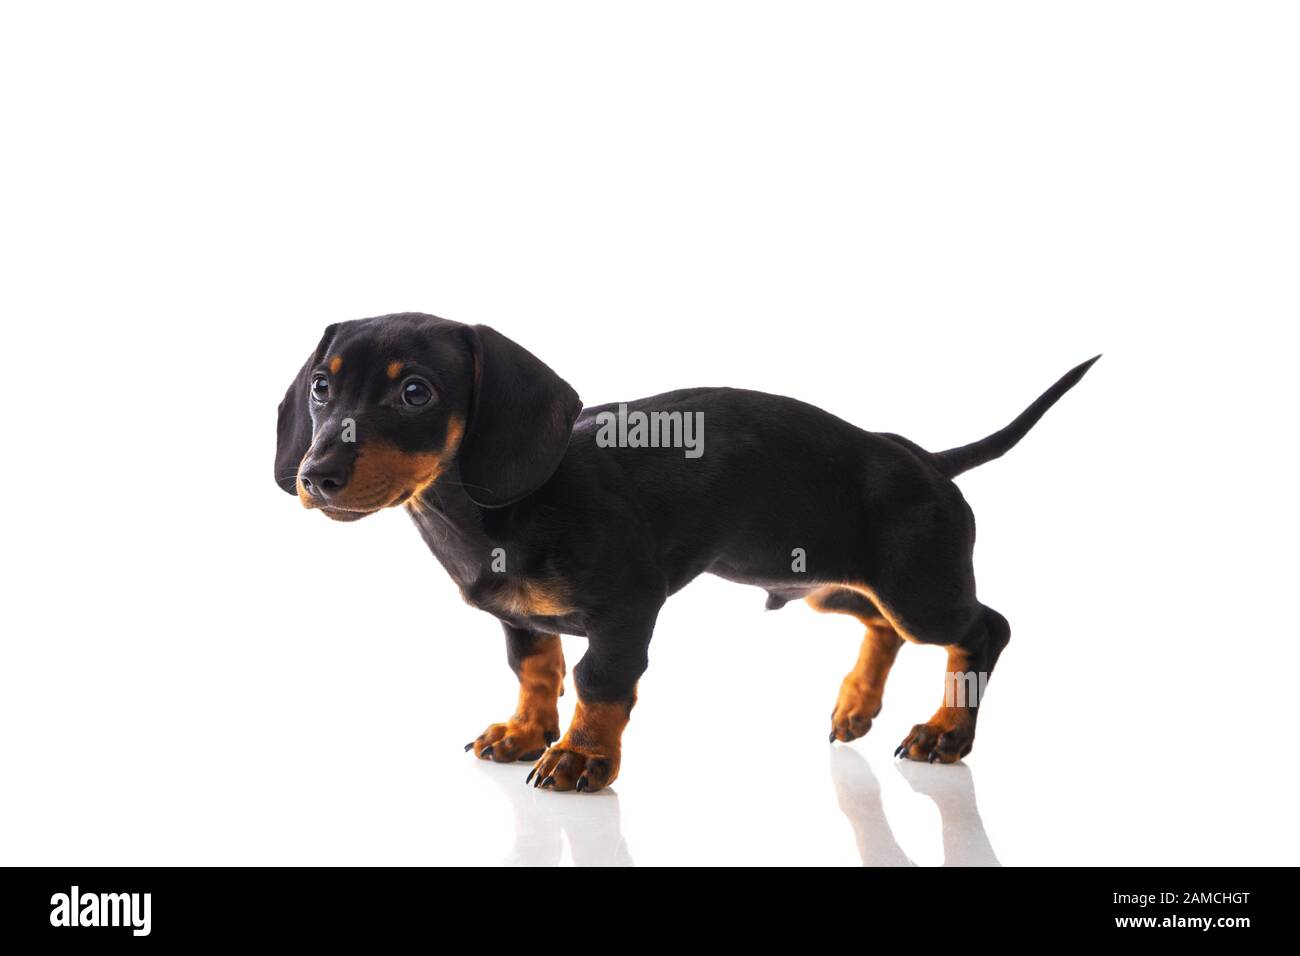 Page 3 Sausage Dog Puppy High Resolution Stock Photography And Images Alamy